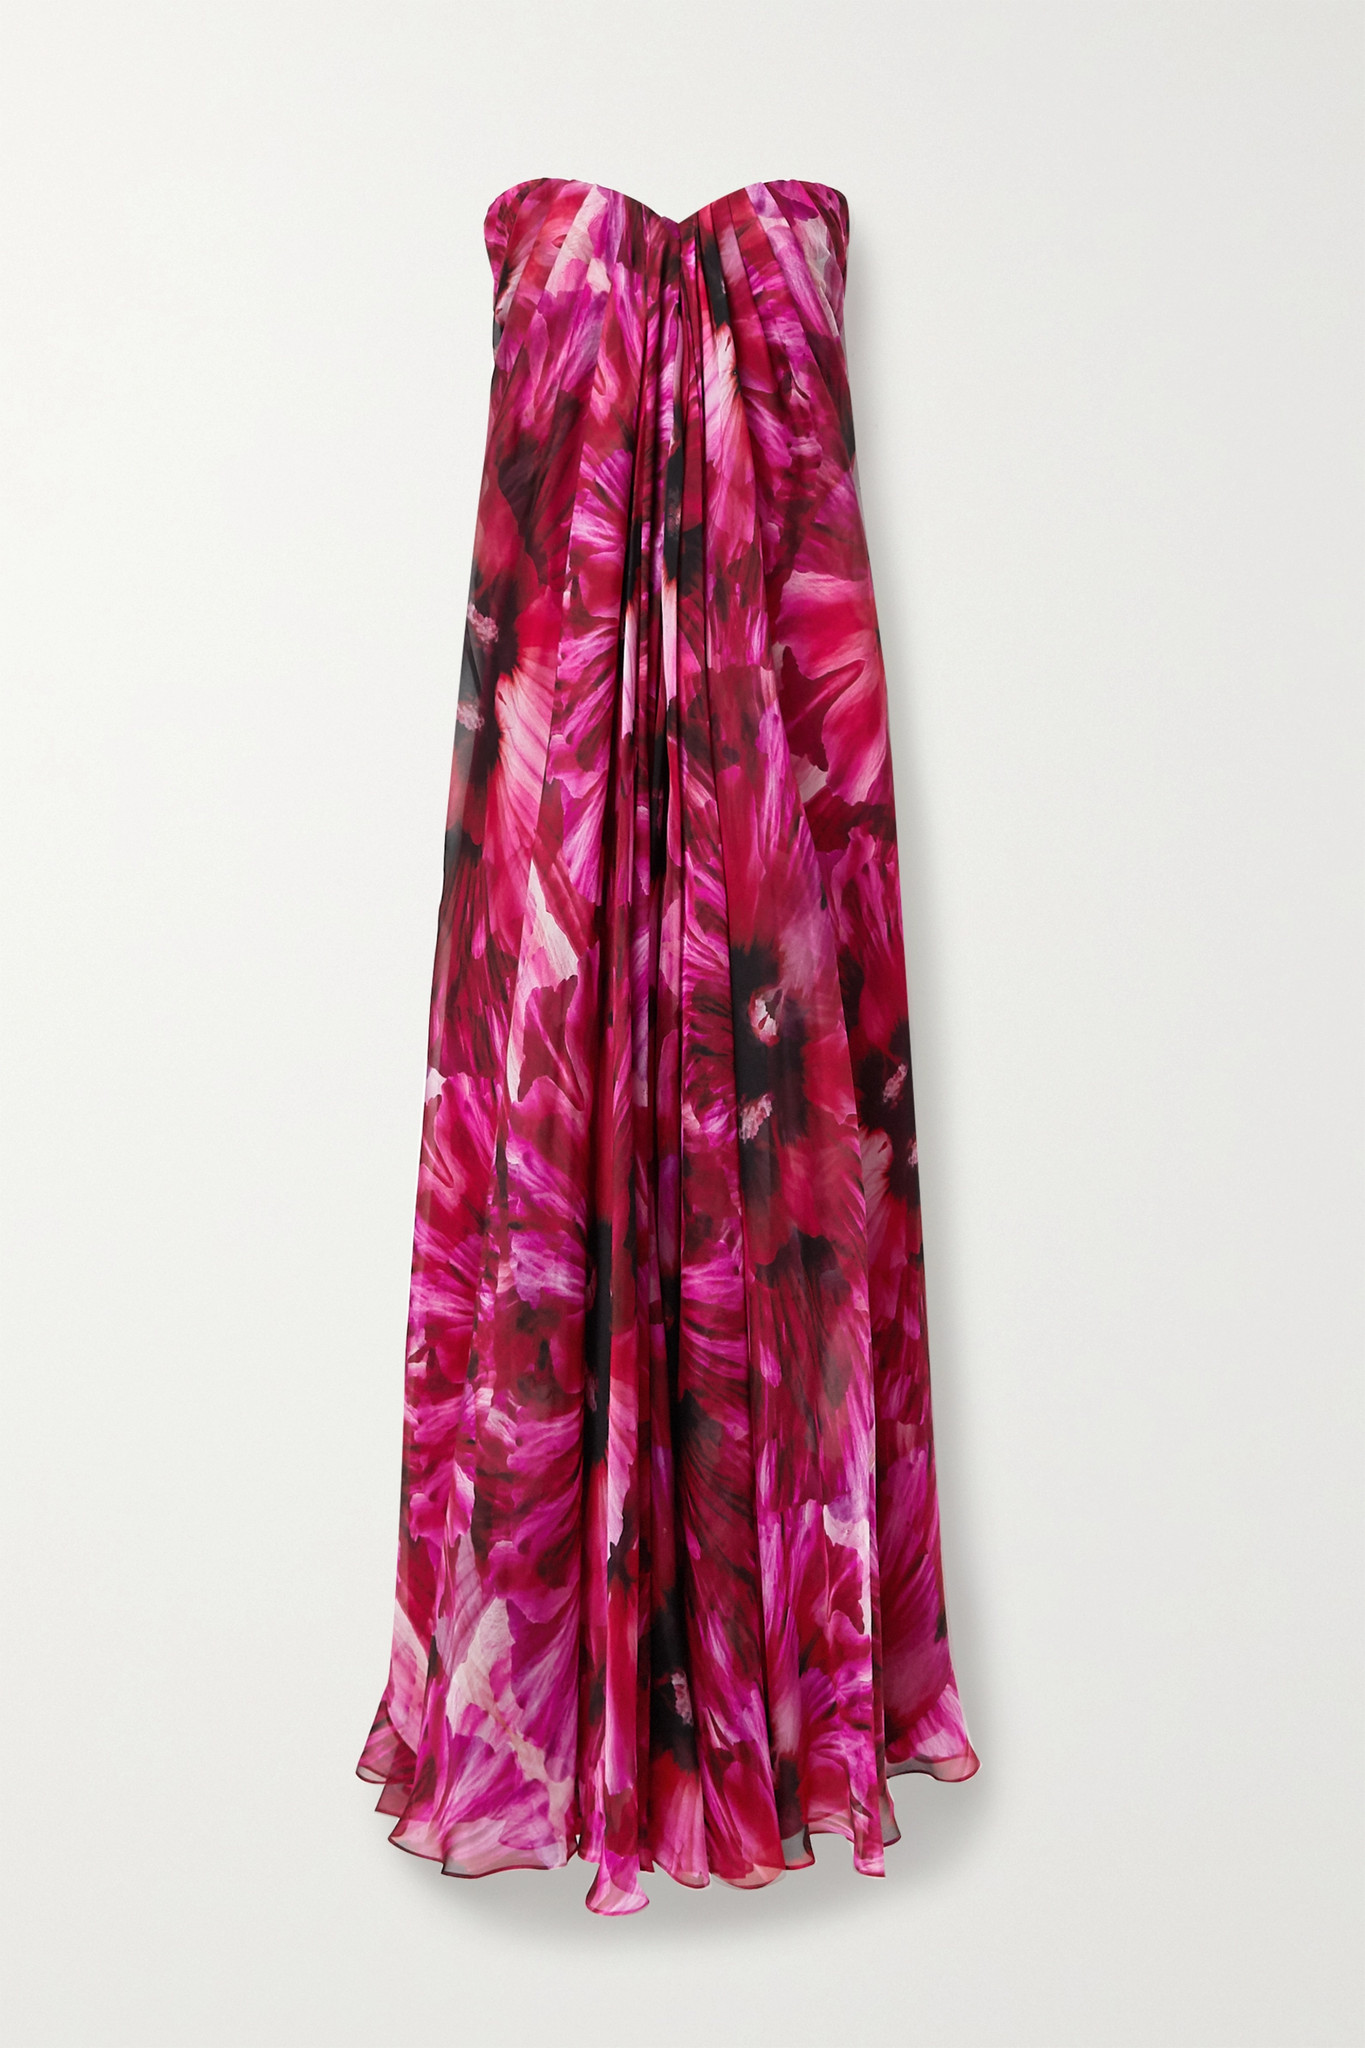 ALEXANDER MCQUEEN - Strapless Pleated Floral-print Silk-crepe De Chine Gown - Pink - IT38